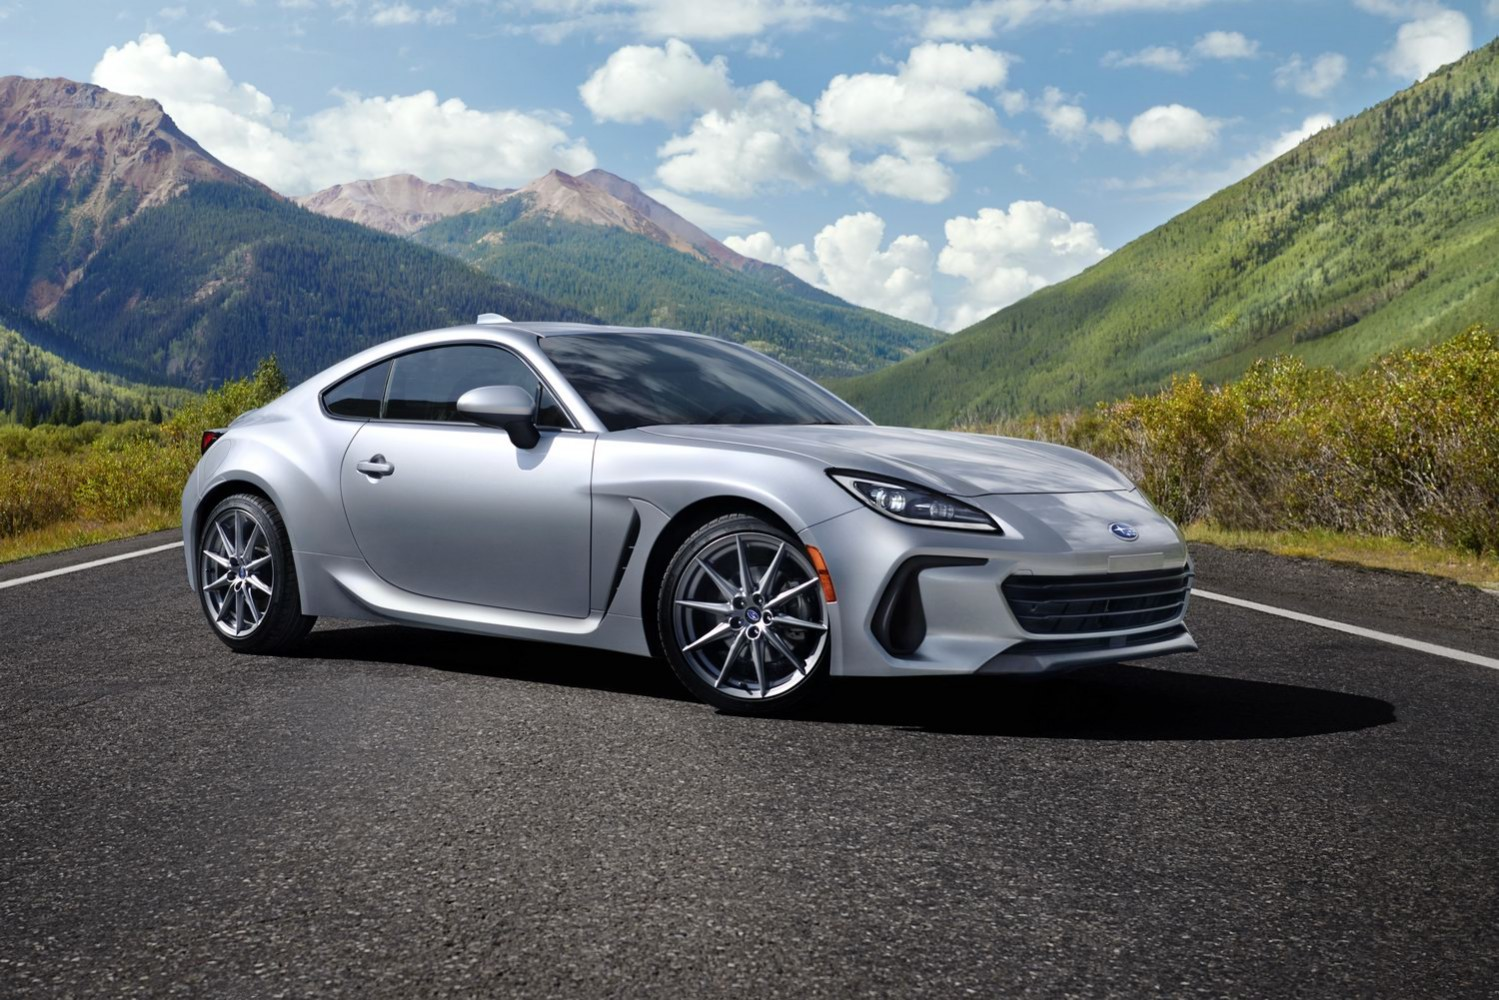 Car News | Subaru reveals second-generation BRZ | CompleteCar.ie